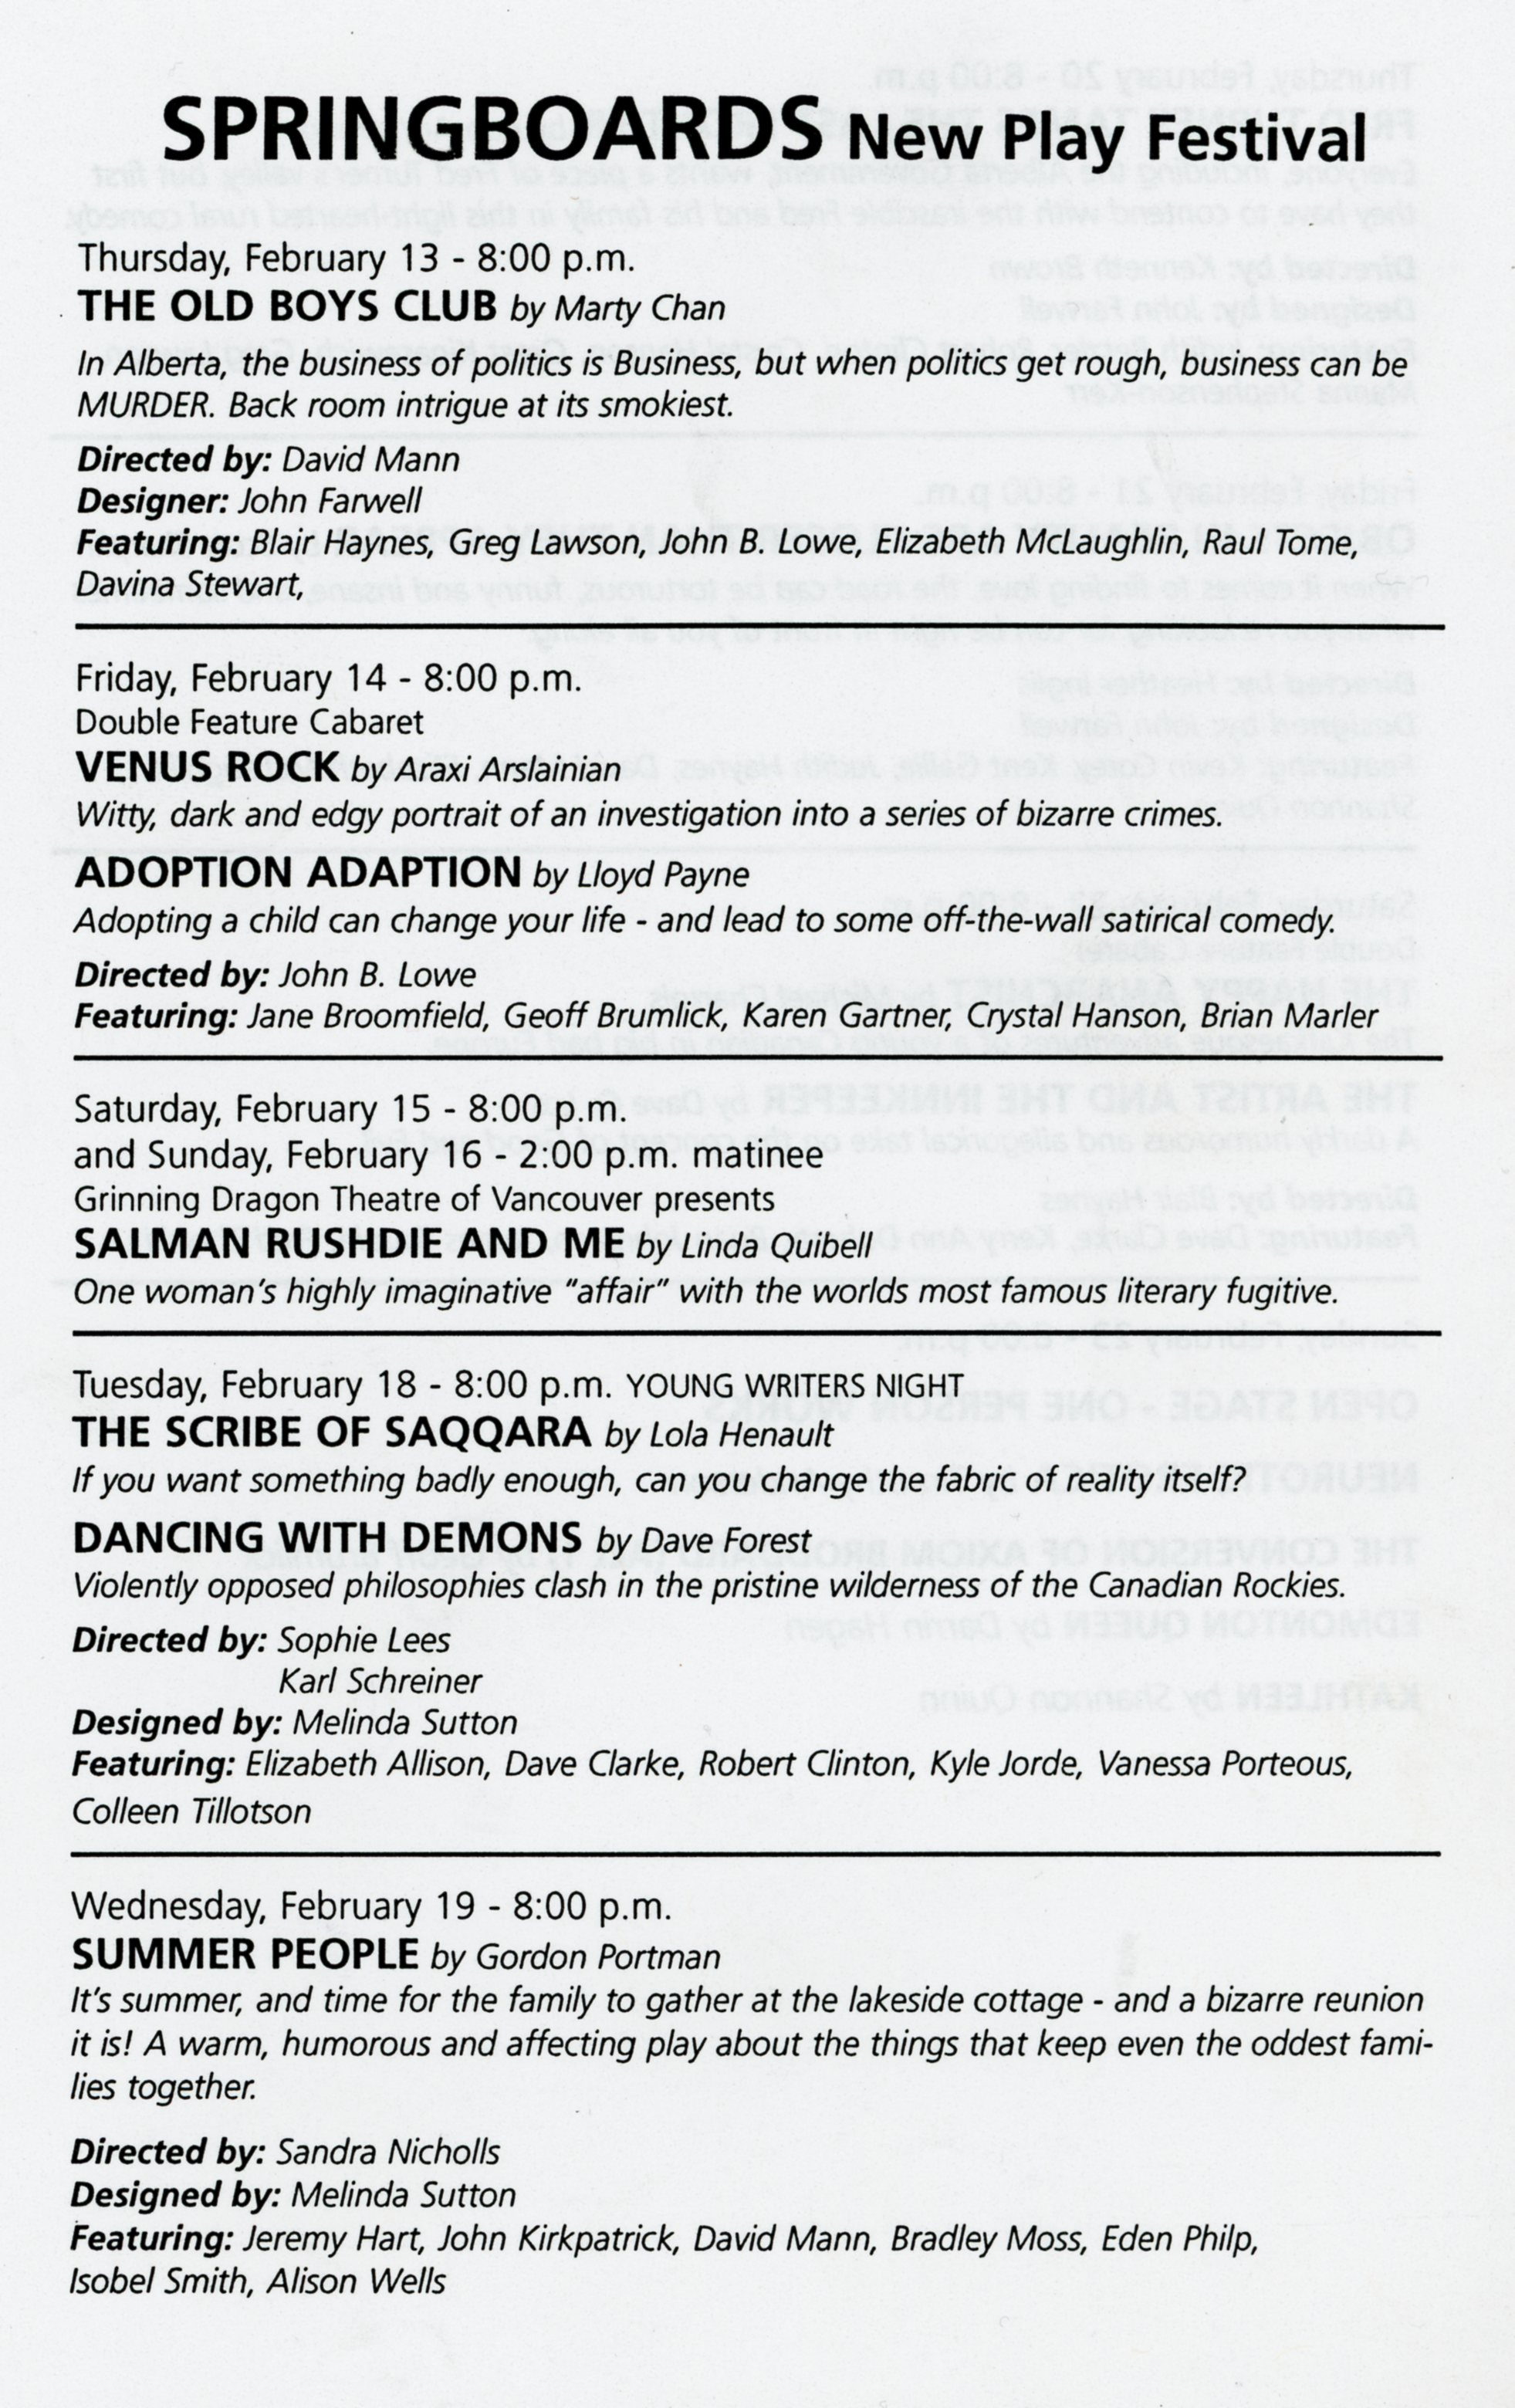 Springboards New Play Festival (February, 1997)-Production Information Part 1_JPEG.jpg